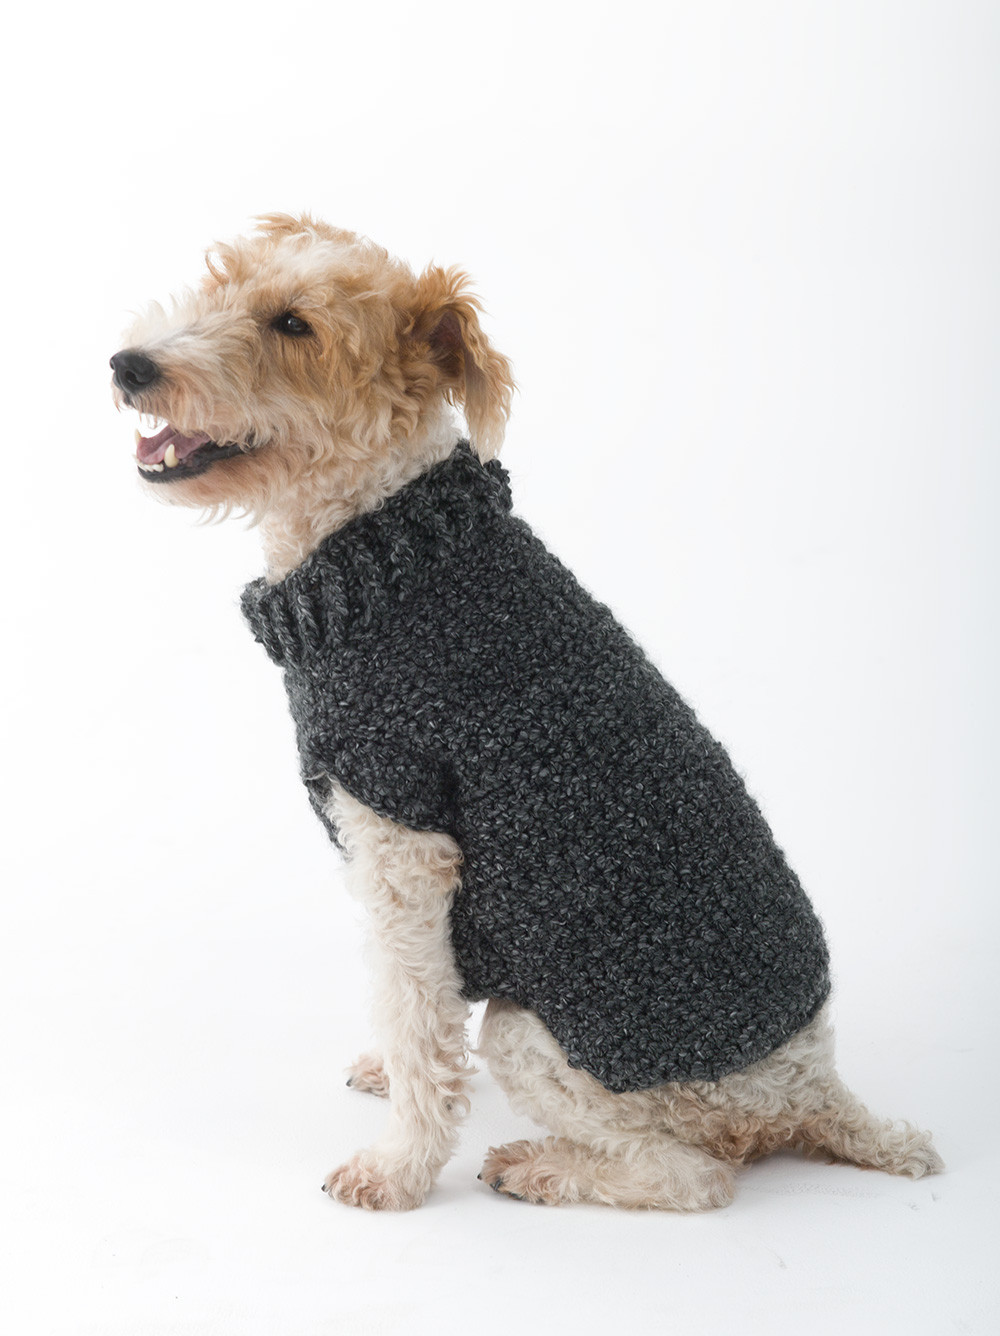 Dog Clothes Patterns Inspirational Doggie Sweaters Crochet Patterns Of Innovative 46 Pics Dog Clothes Patterns